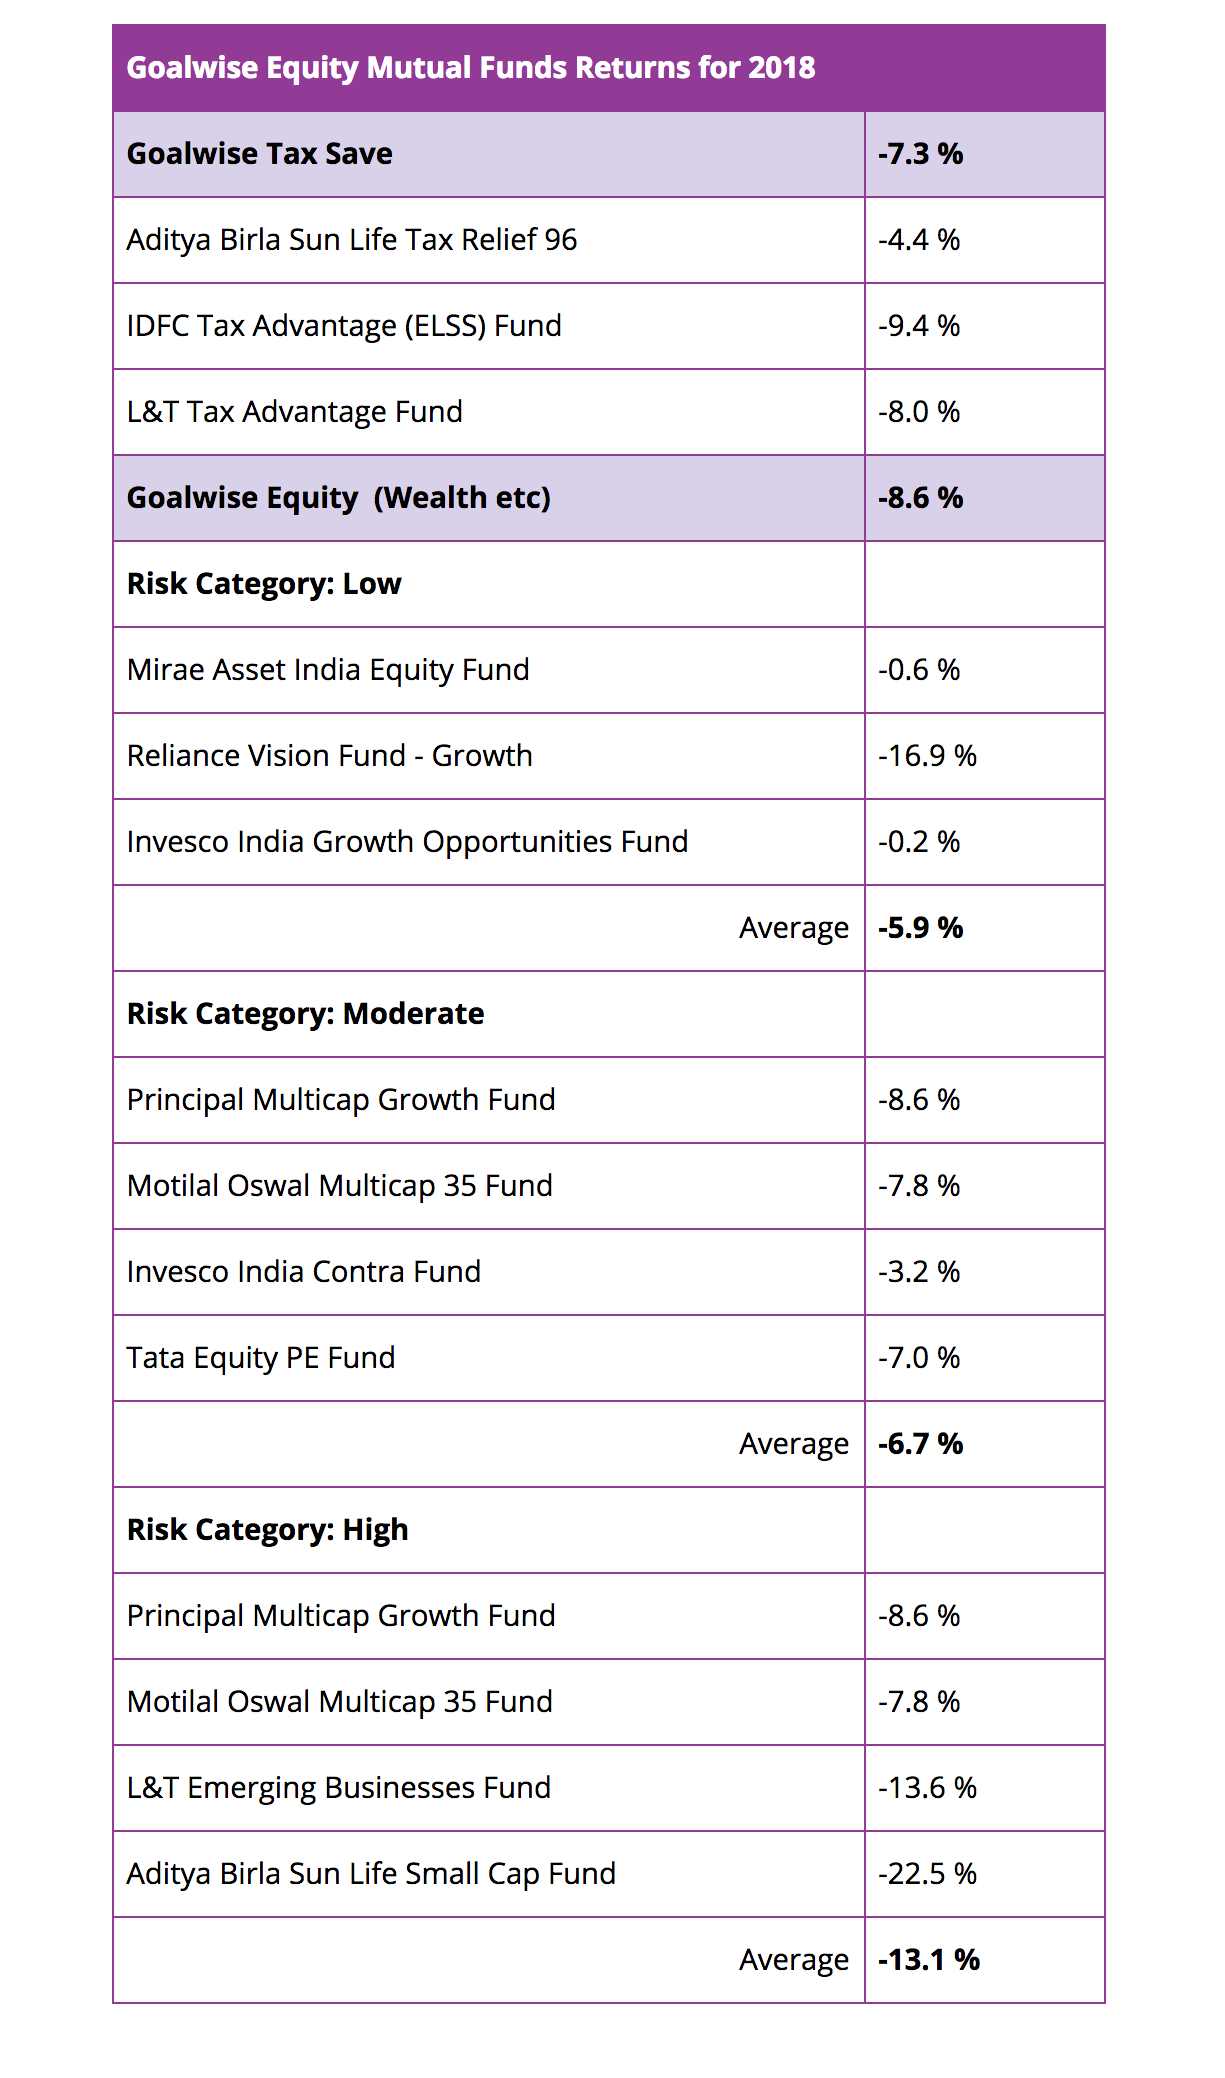 Goalwise-2018-Equity-Fund-Returns